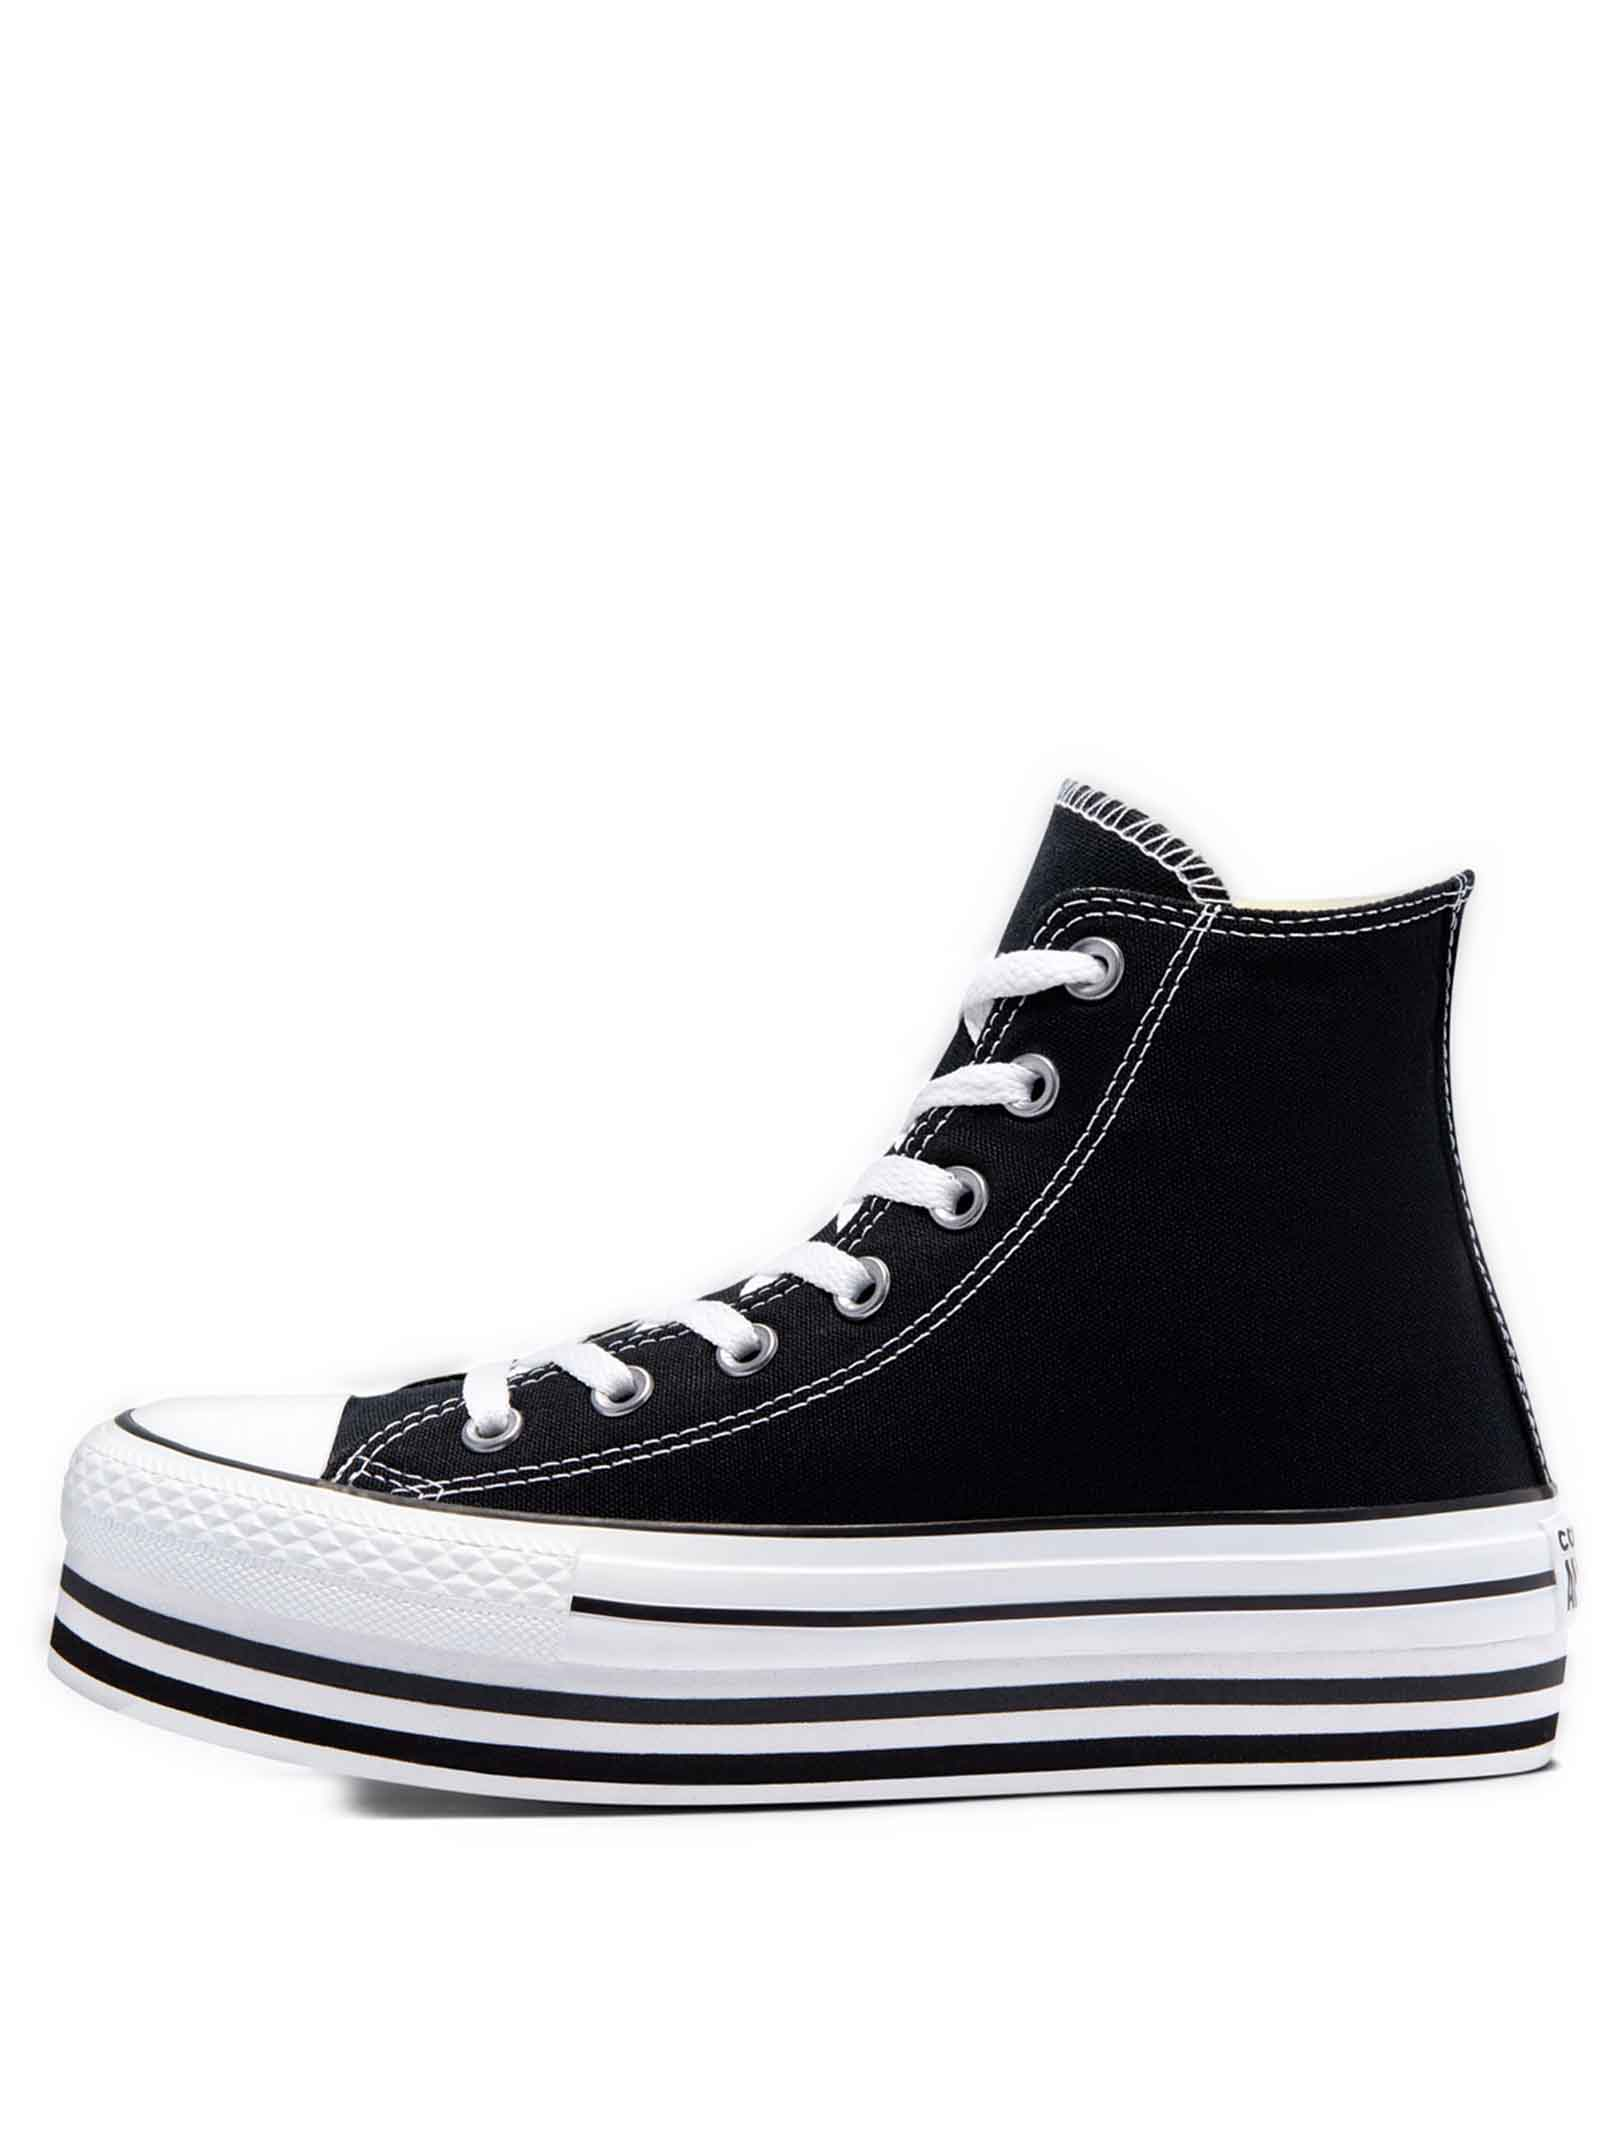 Women's Shoes Sneakers Chuck Taylor Hight Top in Black Canvas and Platform Sole Converse   Sneakers   CHUCK TAYLOR564486C